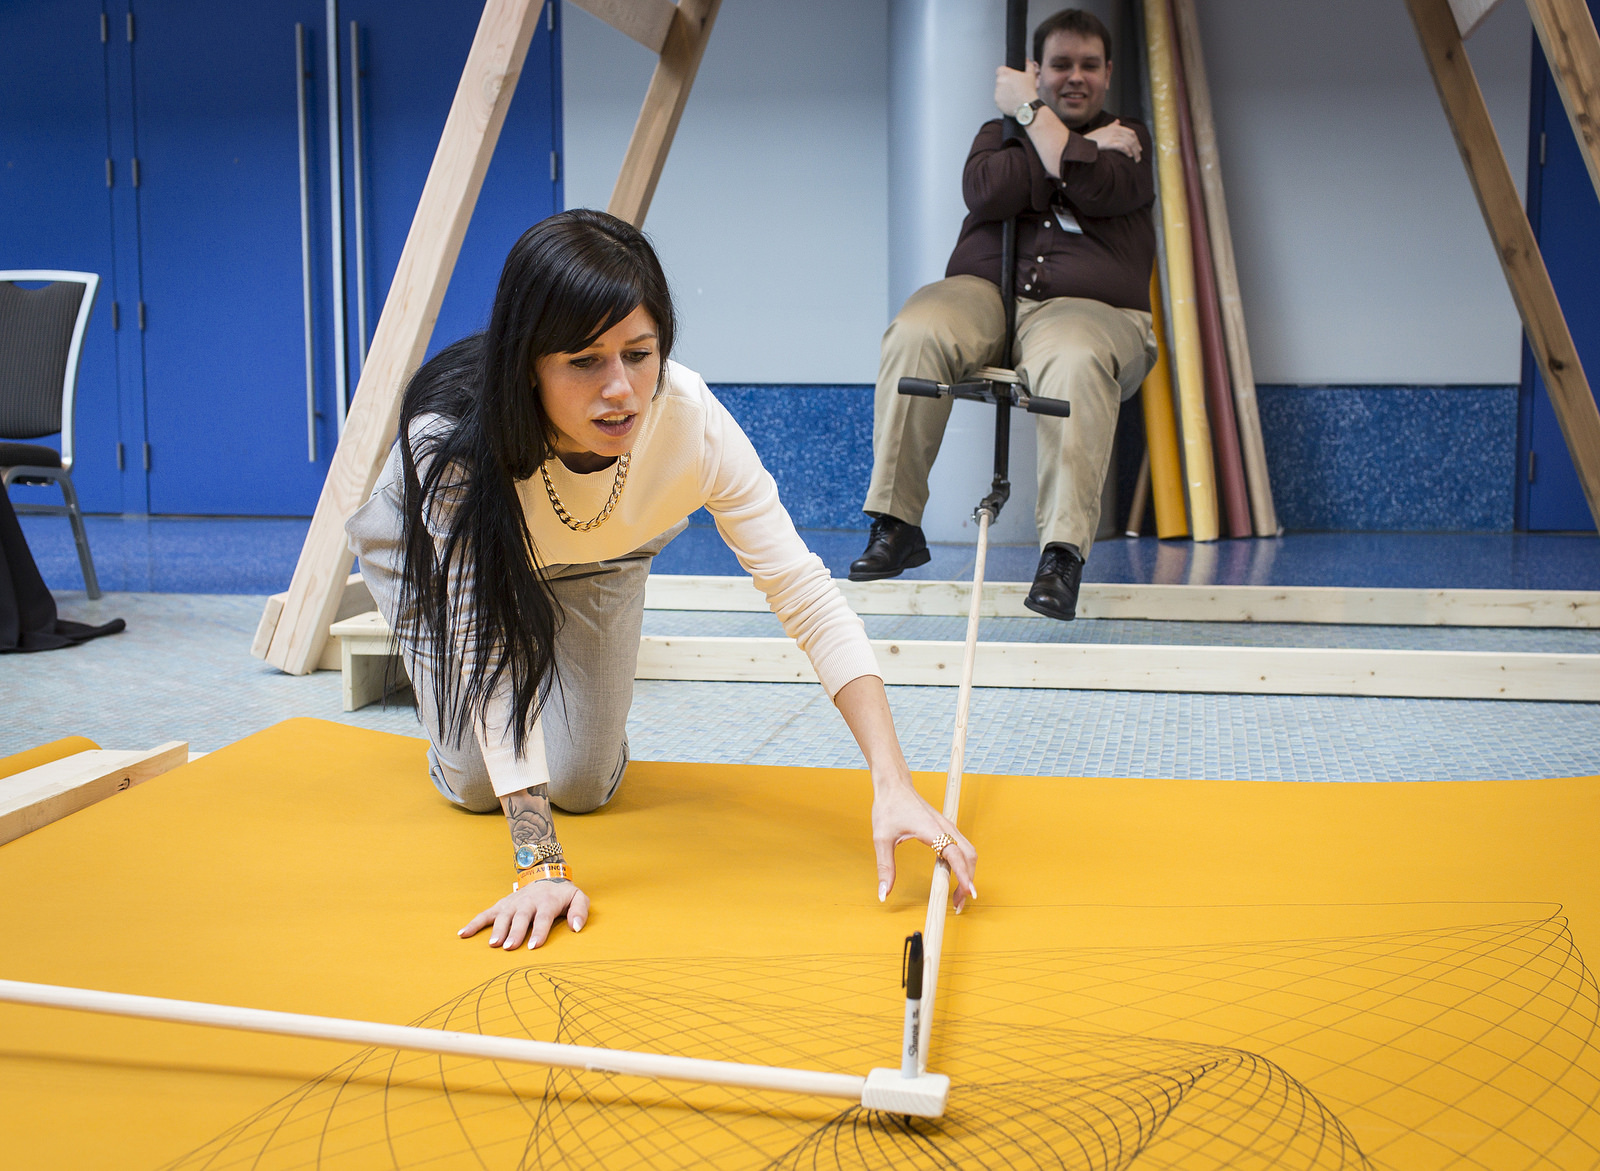 Artist and inventor Carley Stadelmann helps retrieve an image from the swingset. Photo: James Dunan Davidson/TED